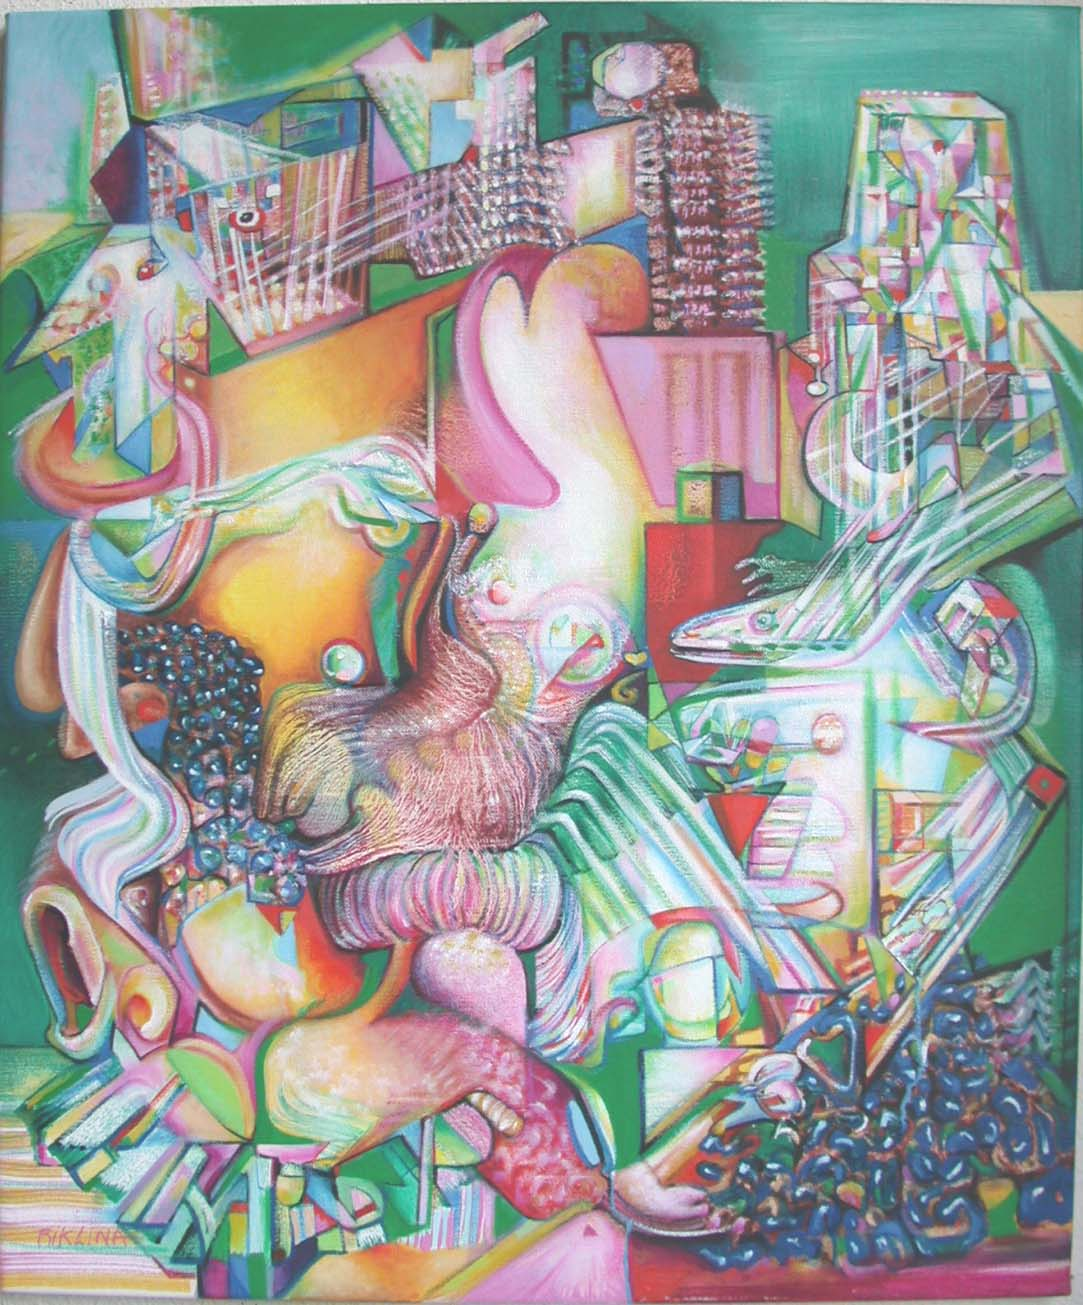 2006 the face of chaos (metropolis)90x75